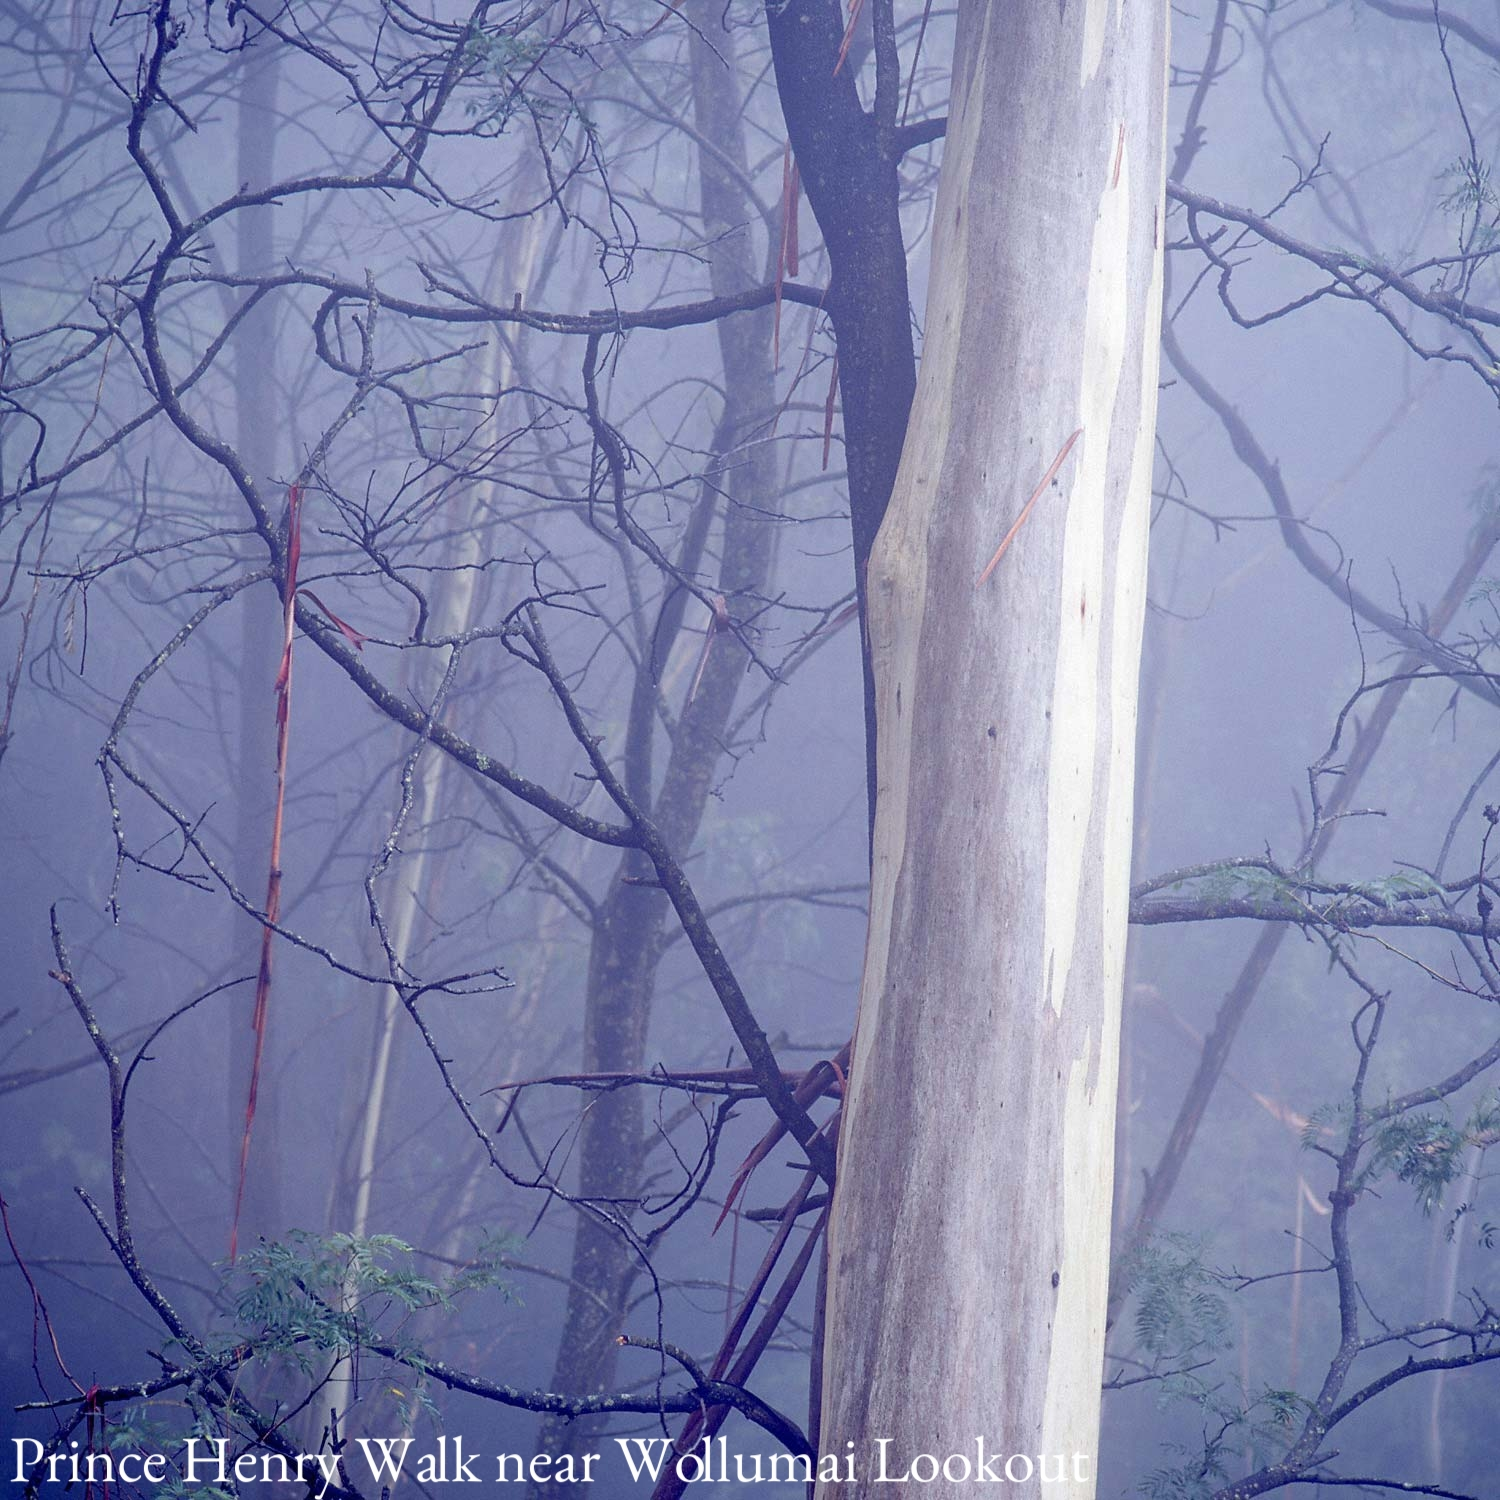 Warren-Hinder-Square-Tree-Mist-Prince-Henry-.jpg